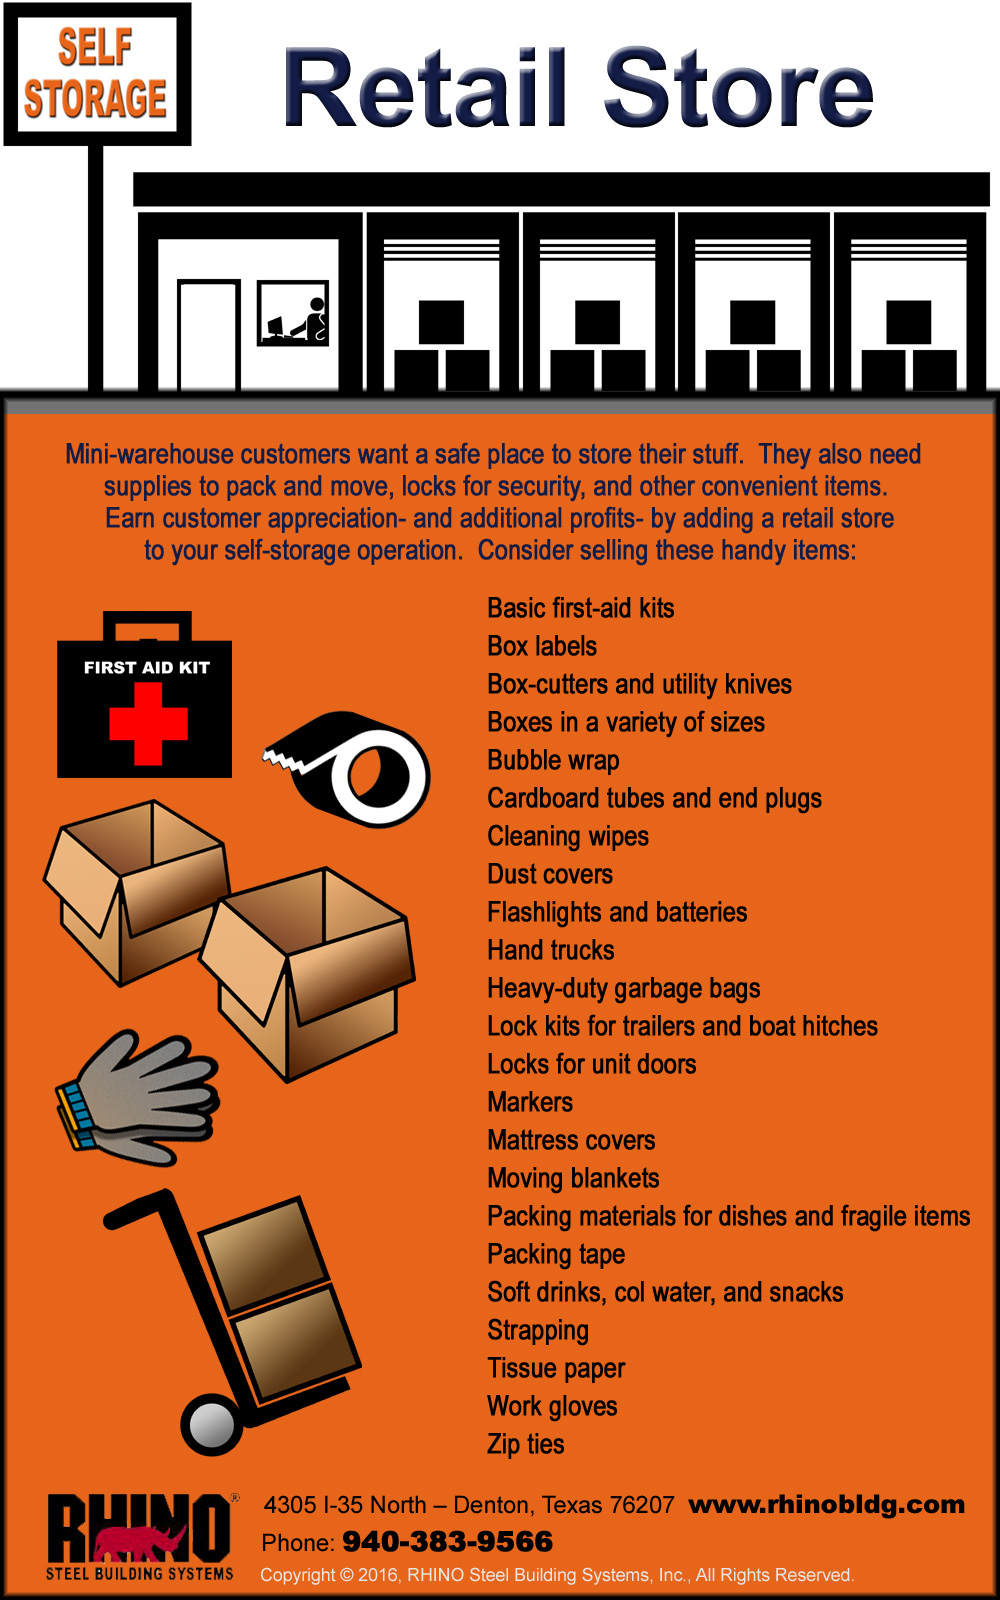 Infographic depicts possible items available in a commercial self-storage store